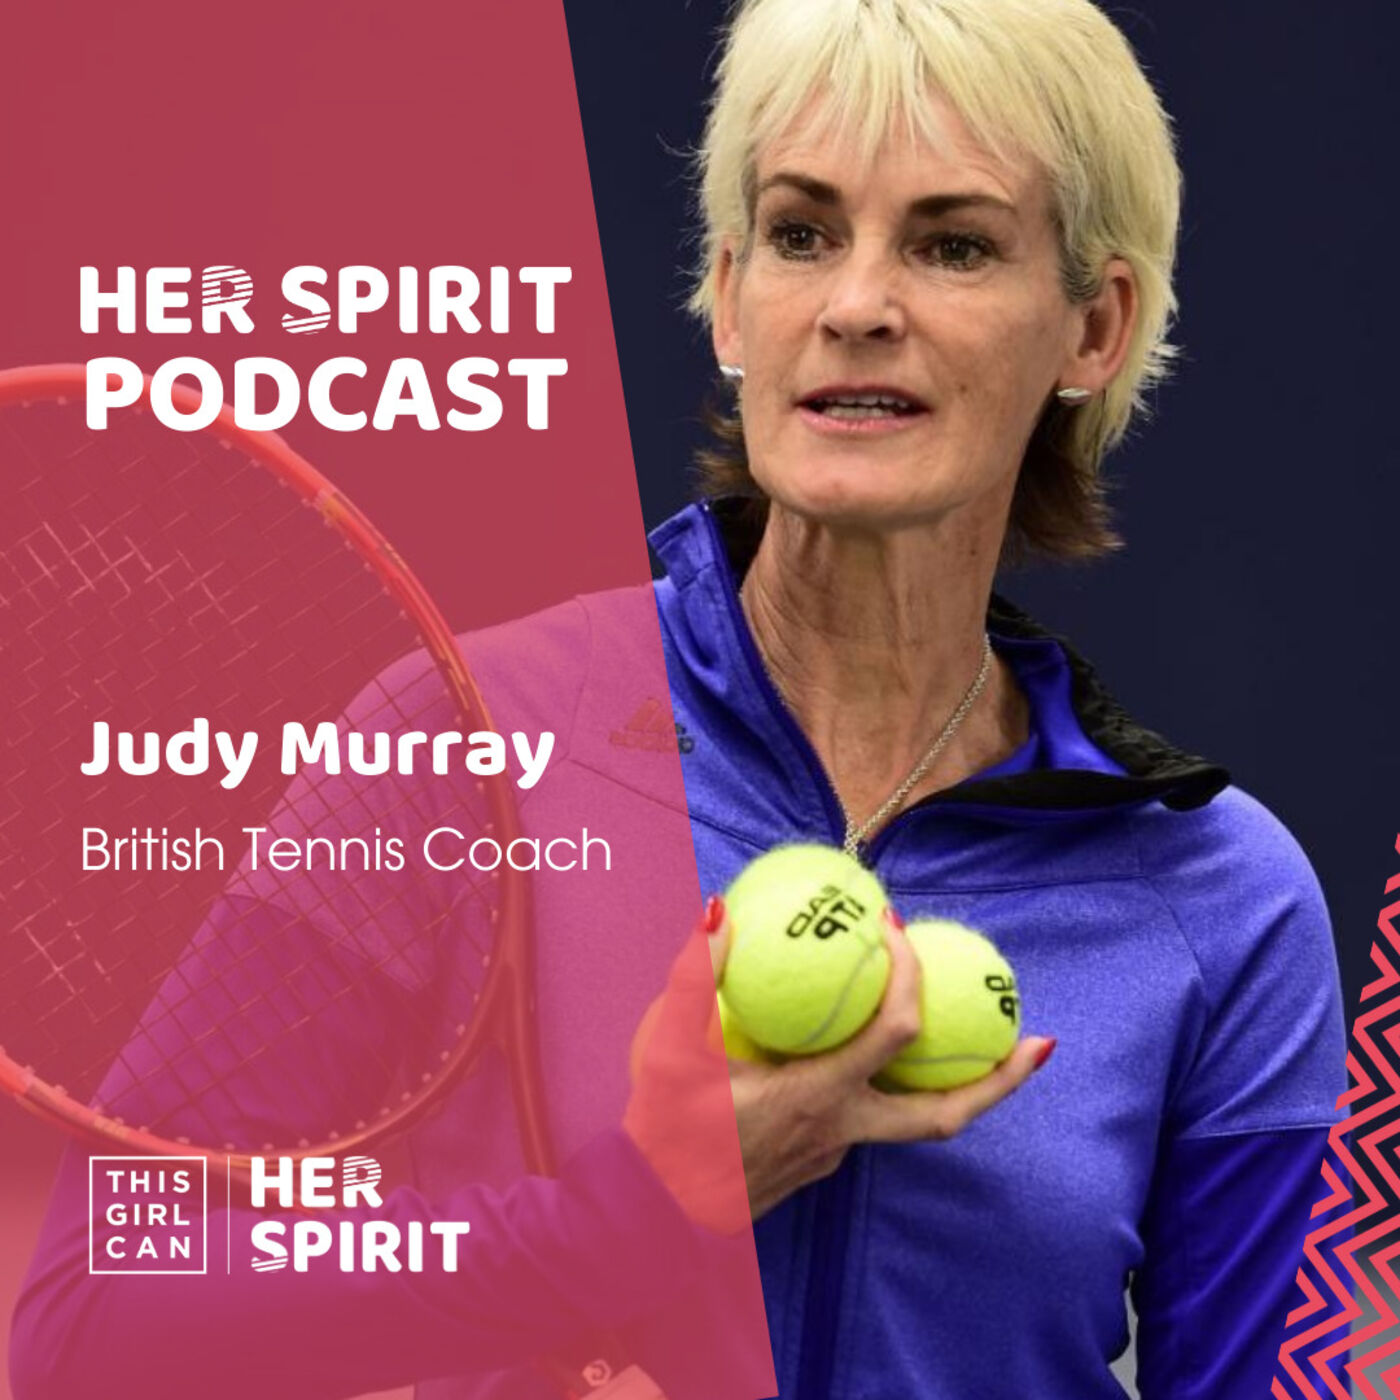 Judy Murray OBE talks to Annie and Louise about life on the tennis circuit, being the mum of Andy and Jamie. And her work as a tennis coach and getting the best out of everyone she works with.